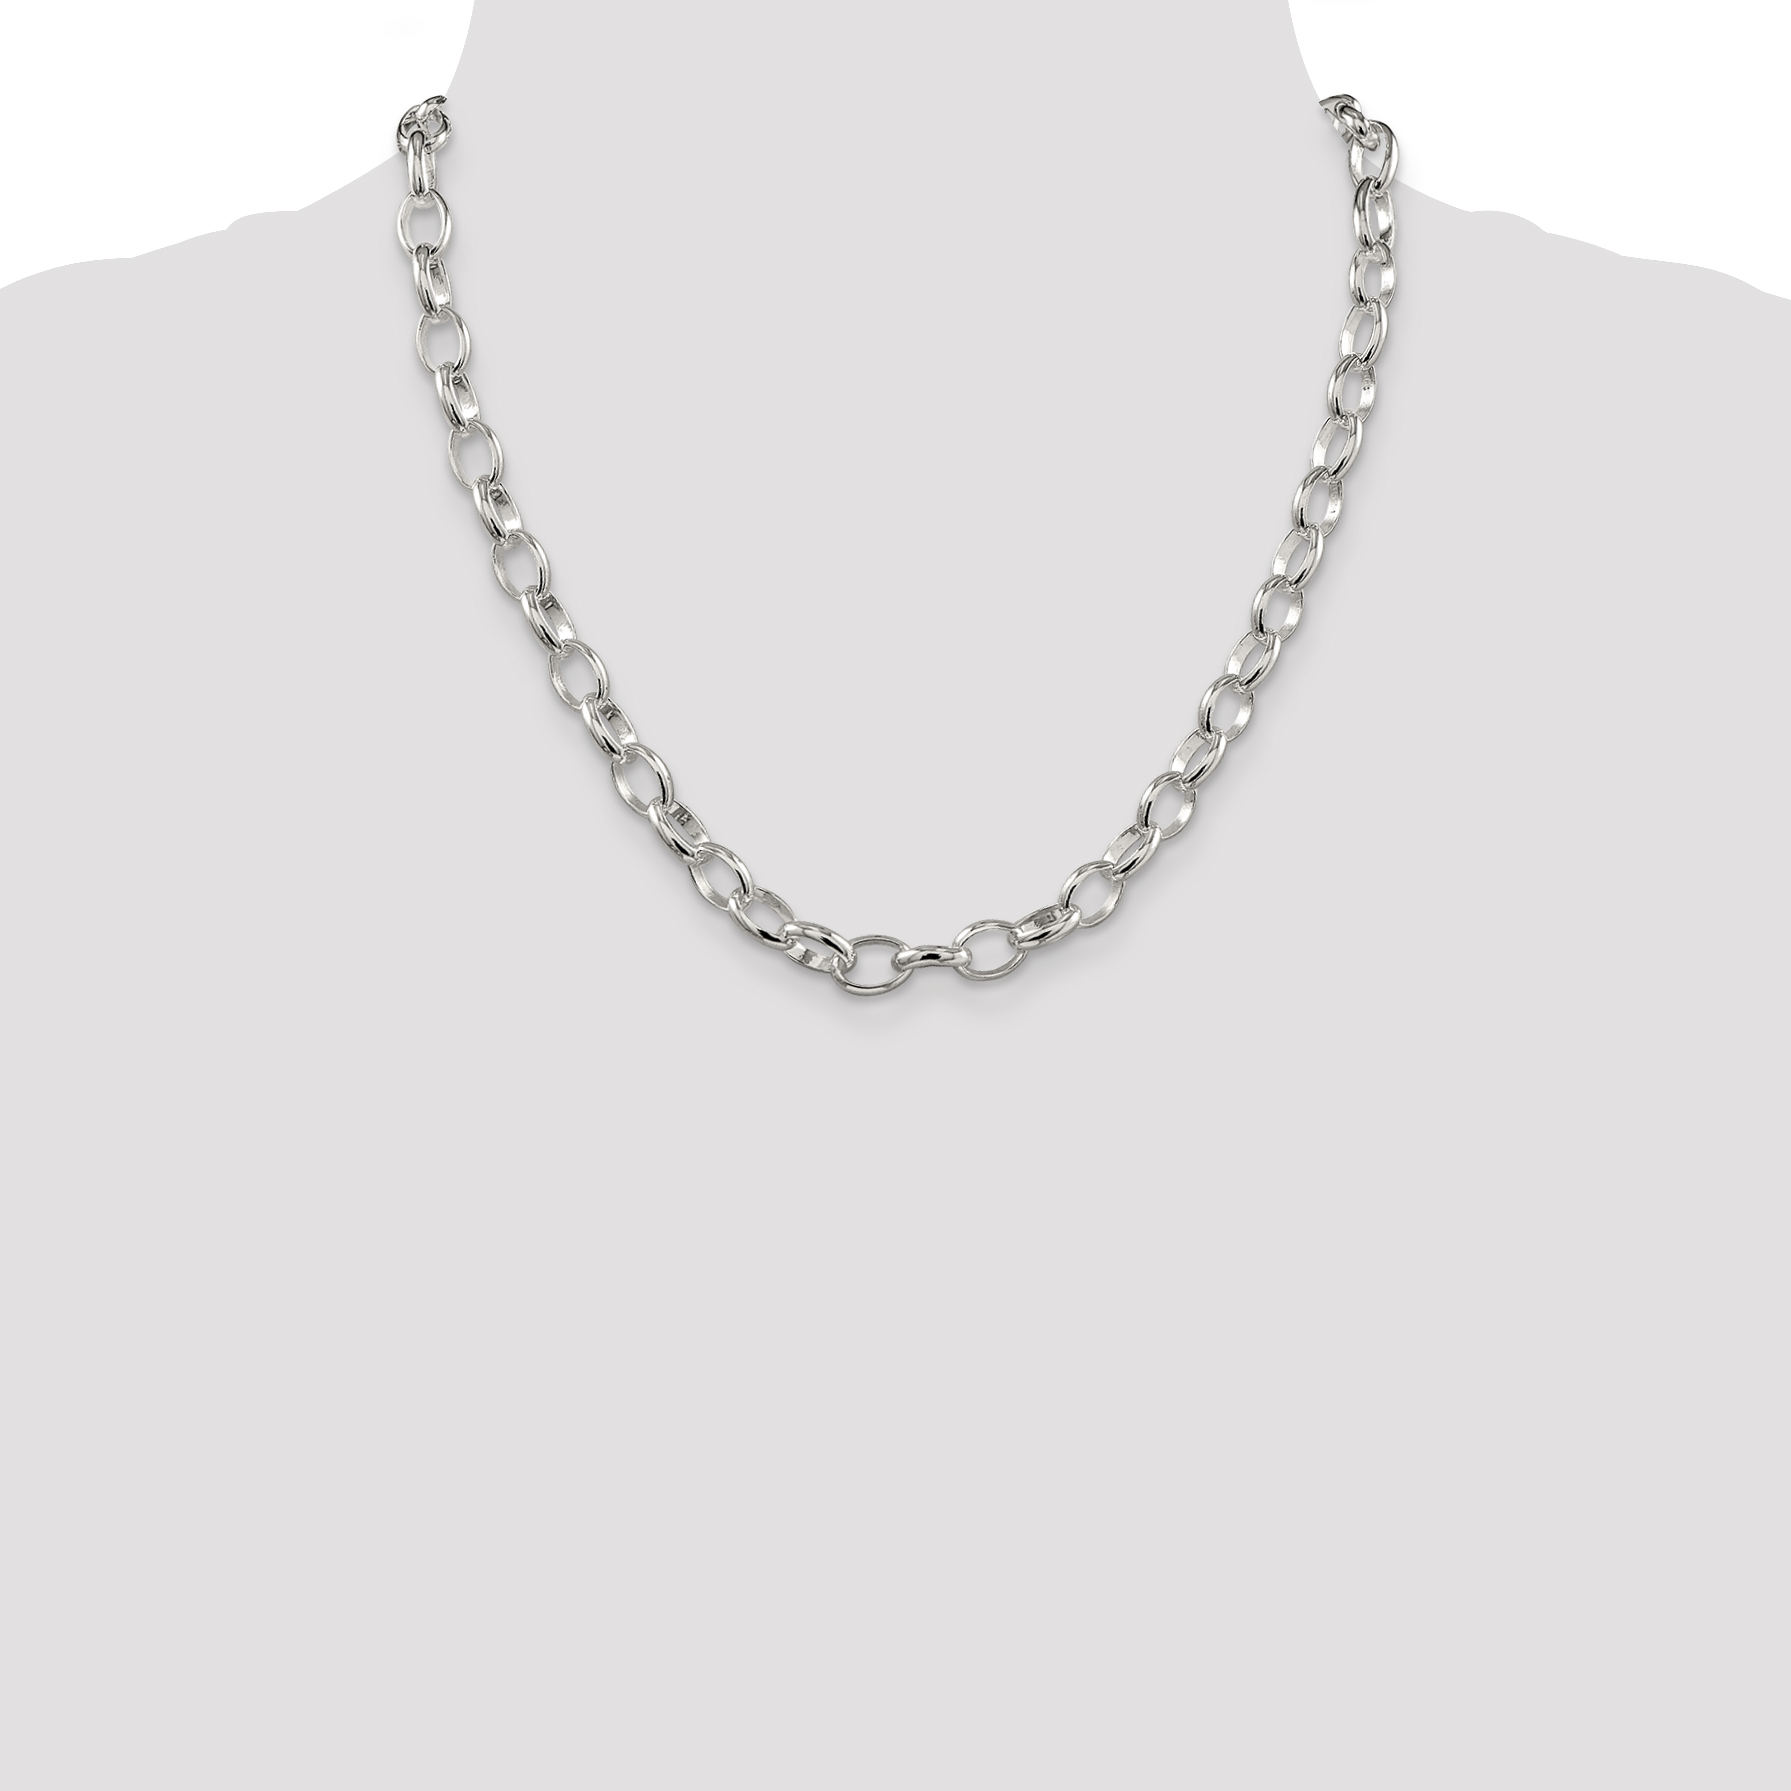 925 Sterling Silver 4.55mm Rolo Chain Necklace 24 Inch Pendant Charm Fancy Fine